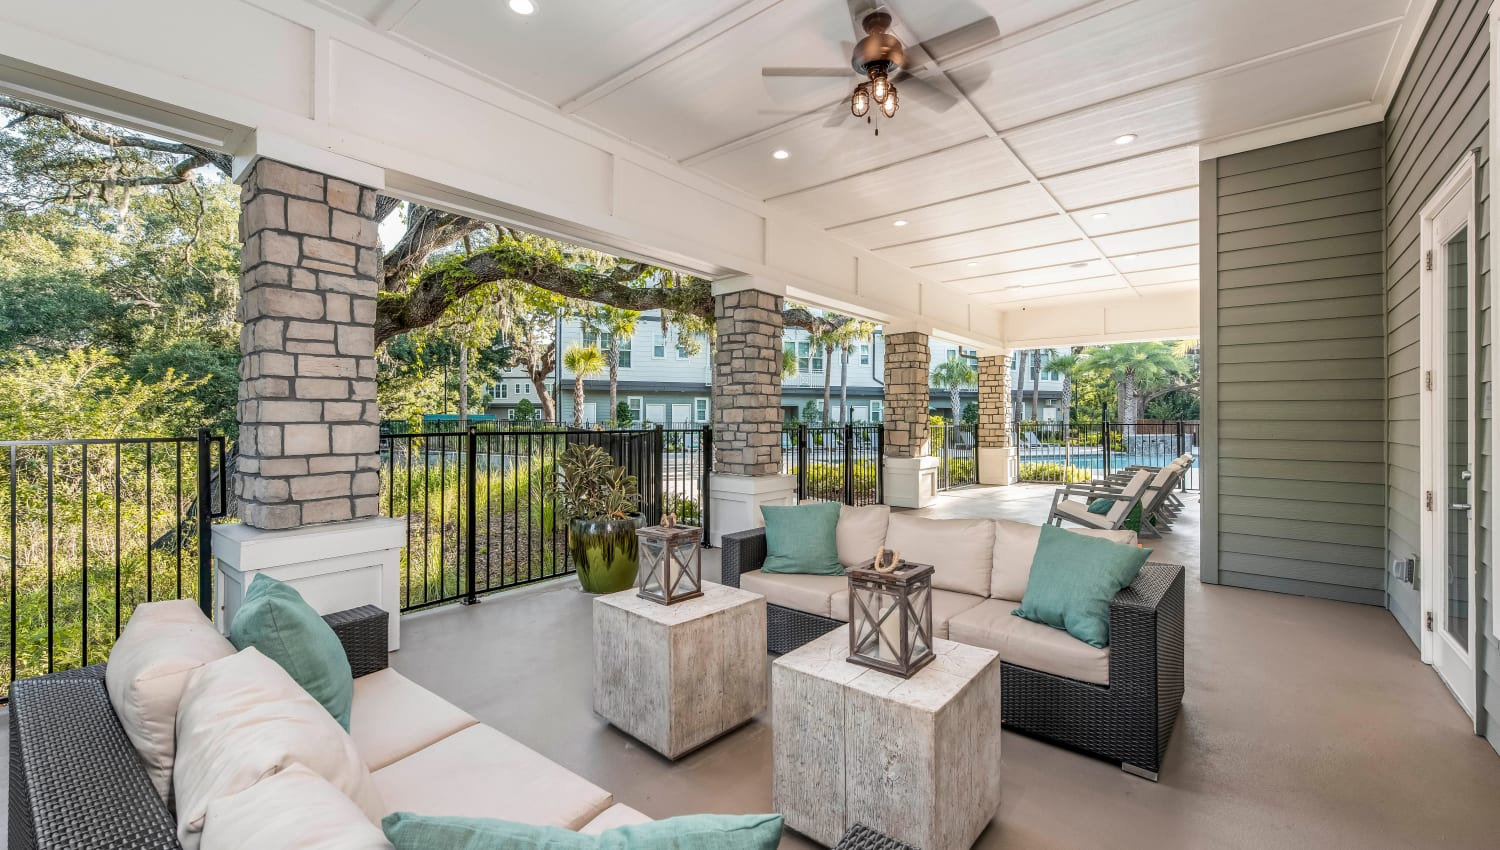 Covered outdoor lounge with a ceiling fan at Canopy at Citrus Park in Tampa, Florida